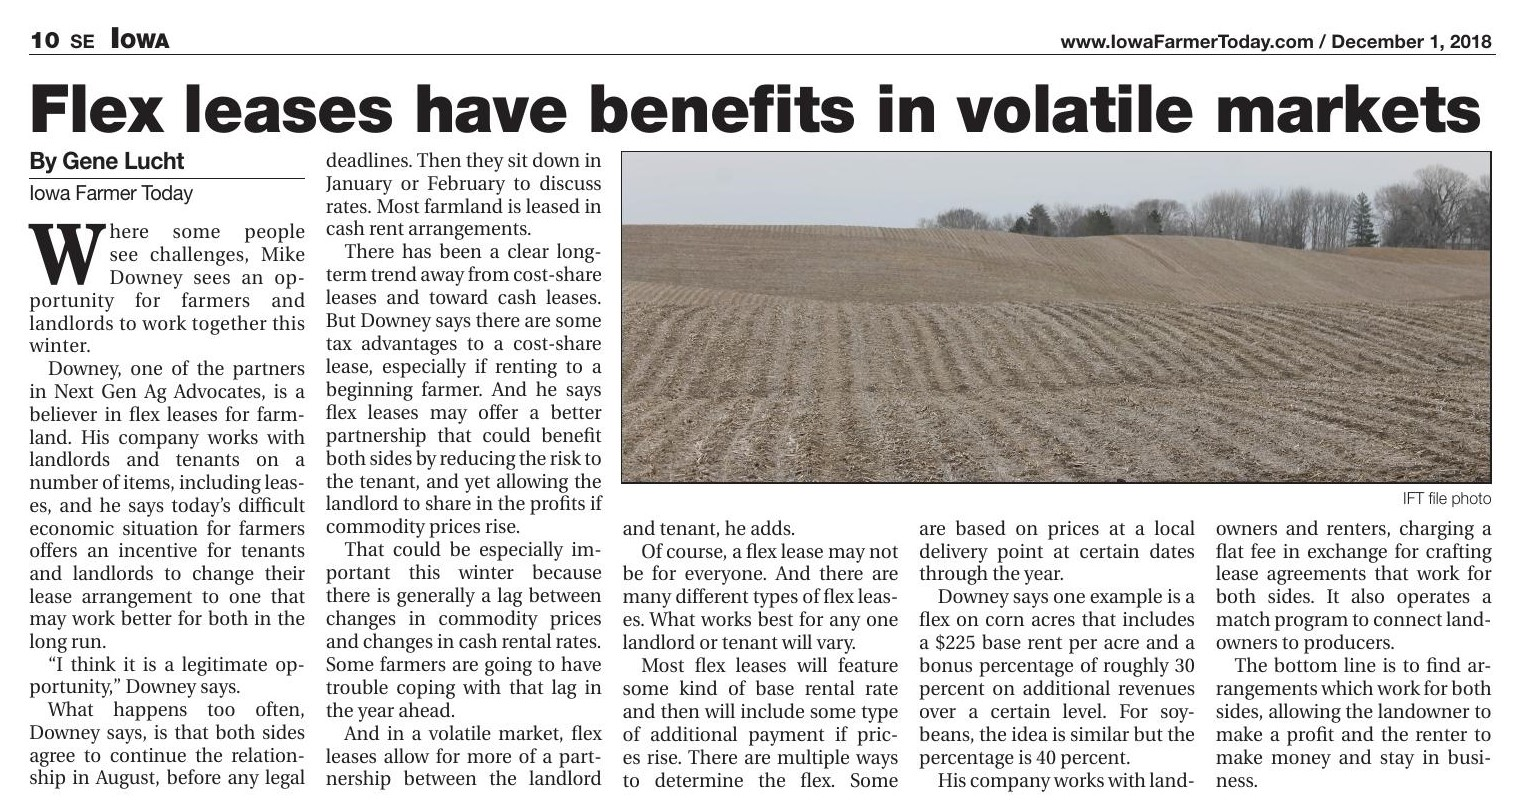 Iowa Farmer Today – Flex leases have benefits in volatile markets